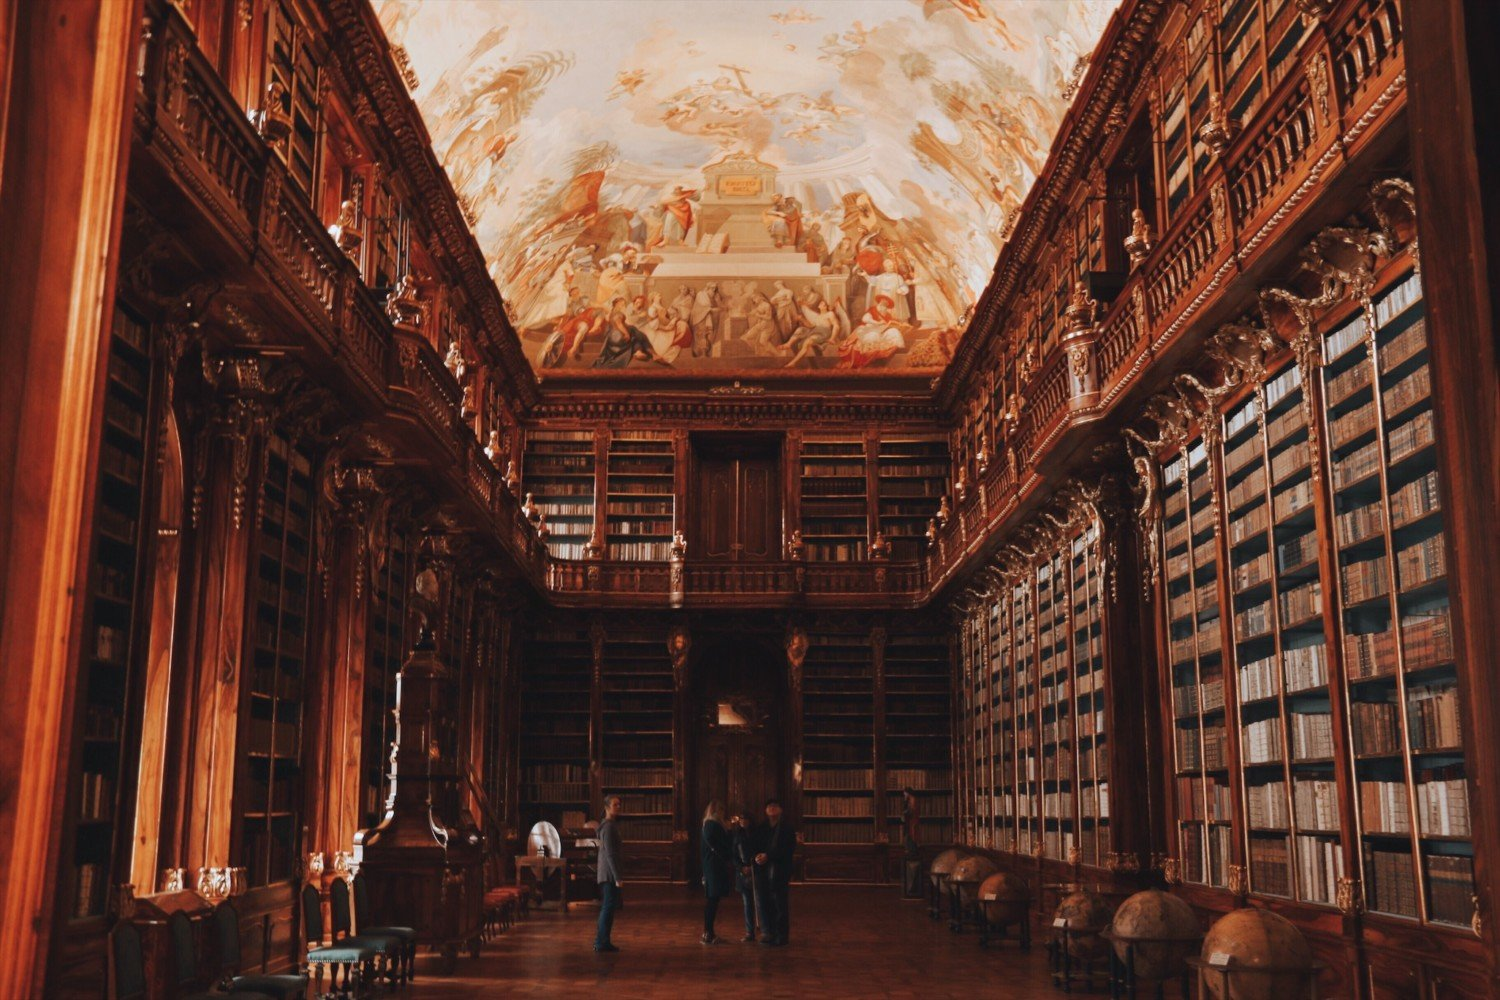 A biblioteca mais linda do mundo